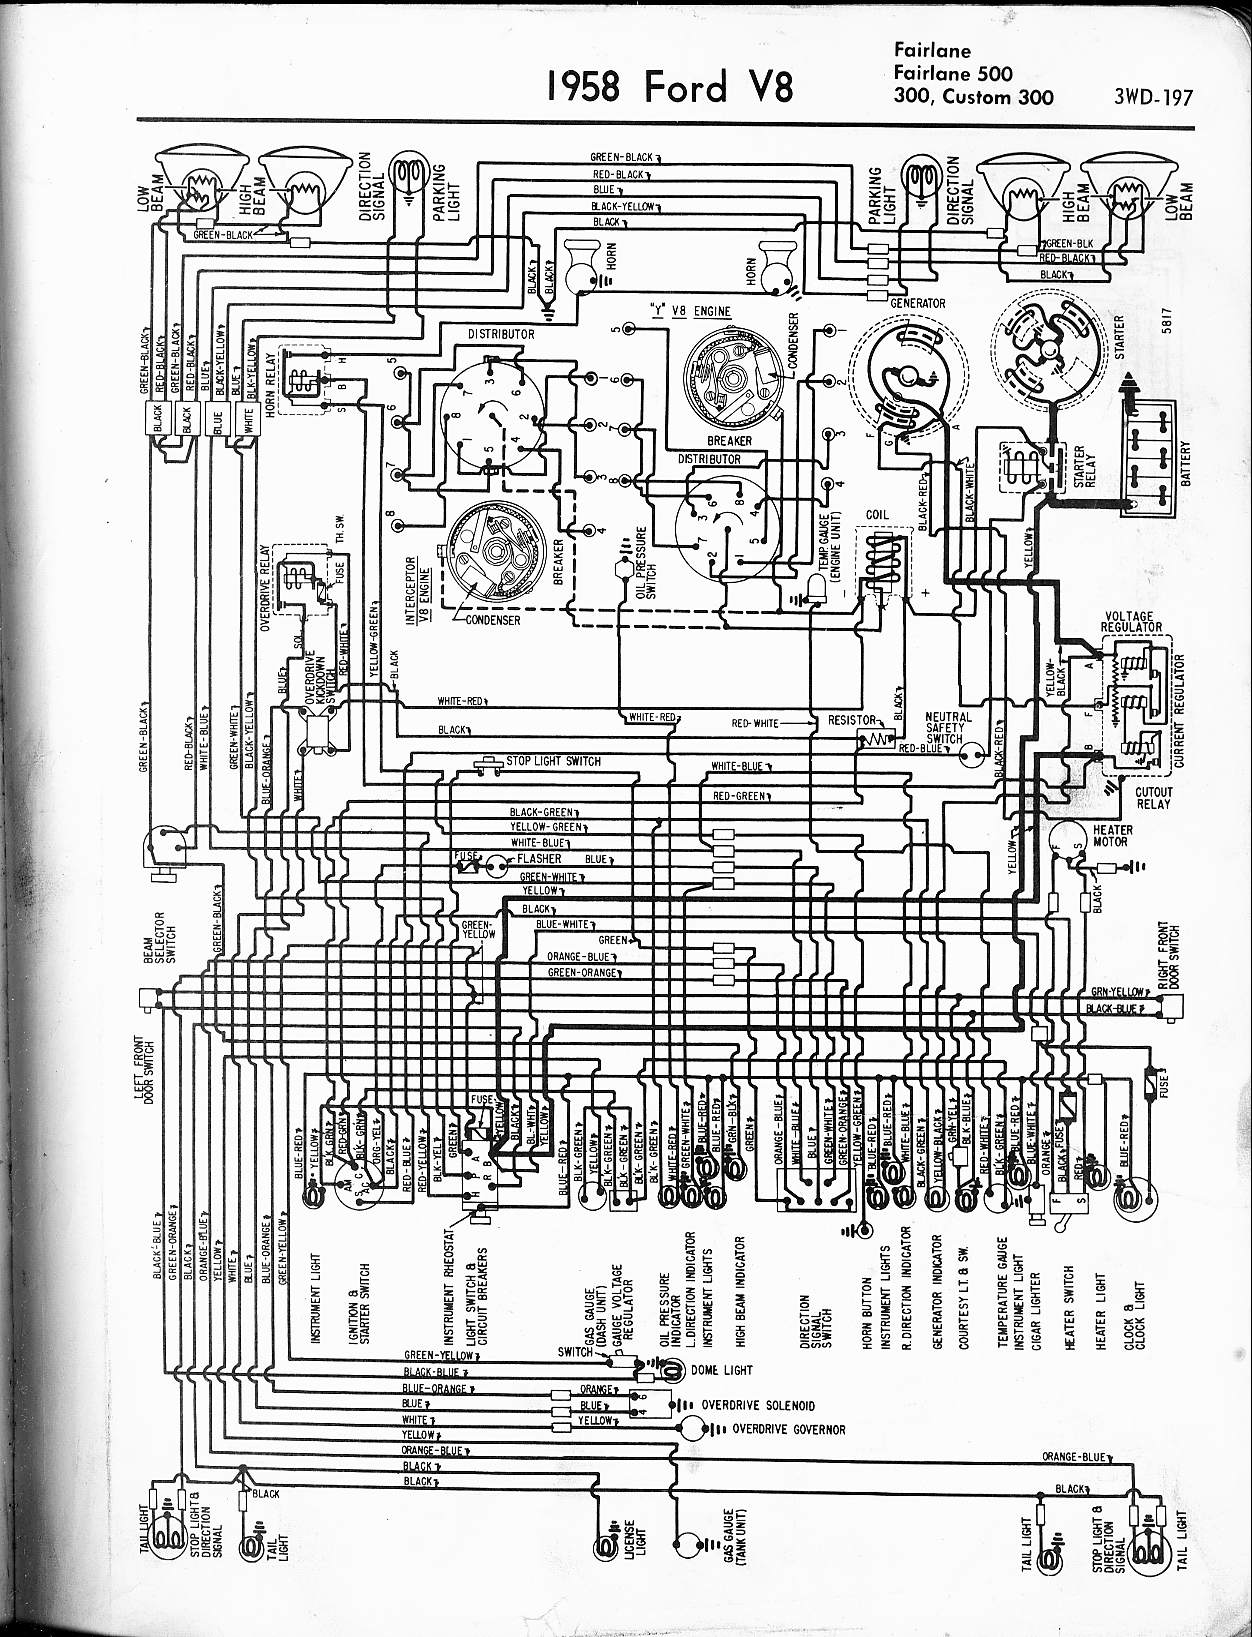 1957 ford wiring schematic wiring diagram meta 57 65 ford wiring diagrams 1957 ford wiring schematic